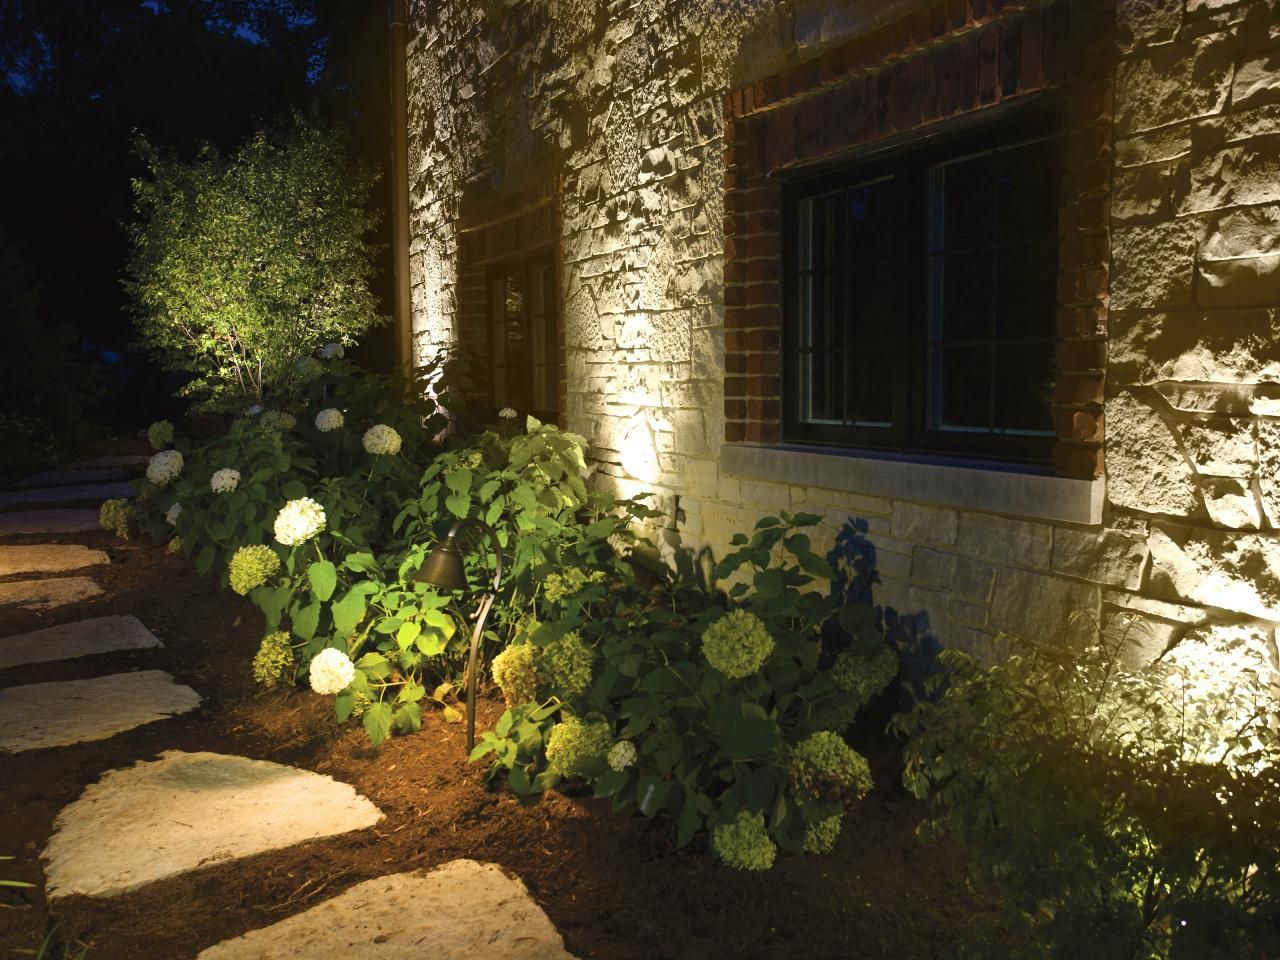 diy home lighting ideas. 22 Landscape Lighting Ideas | DIY Electrical \u0026 Wiring How-Tos - Light Fixtures, Diy Home L